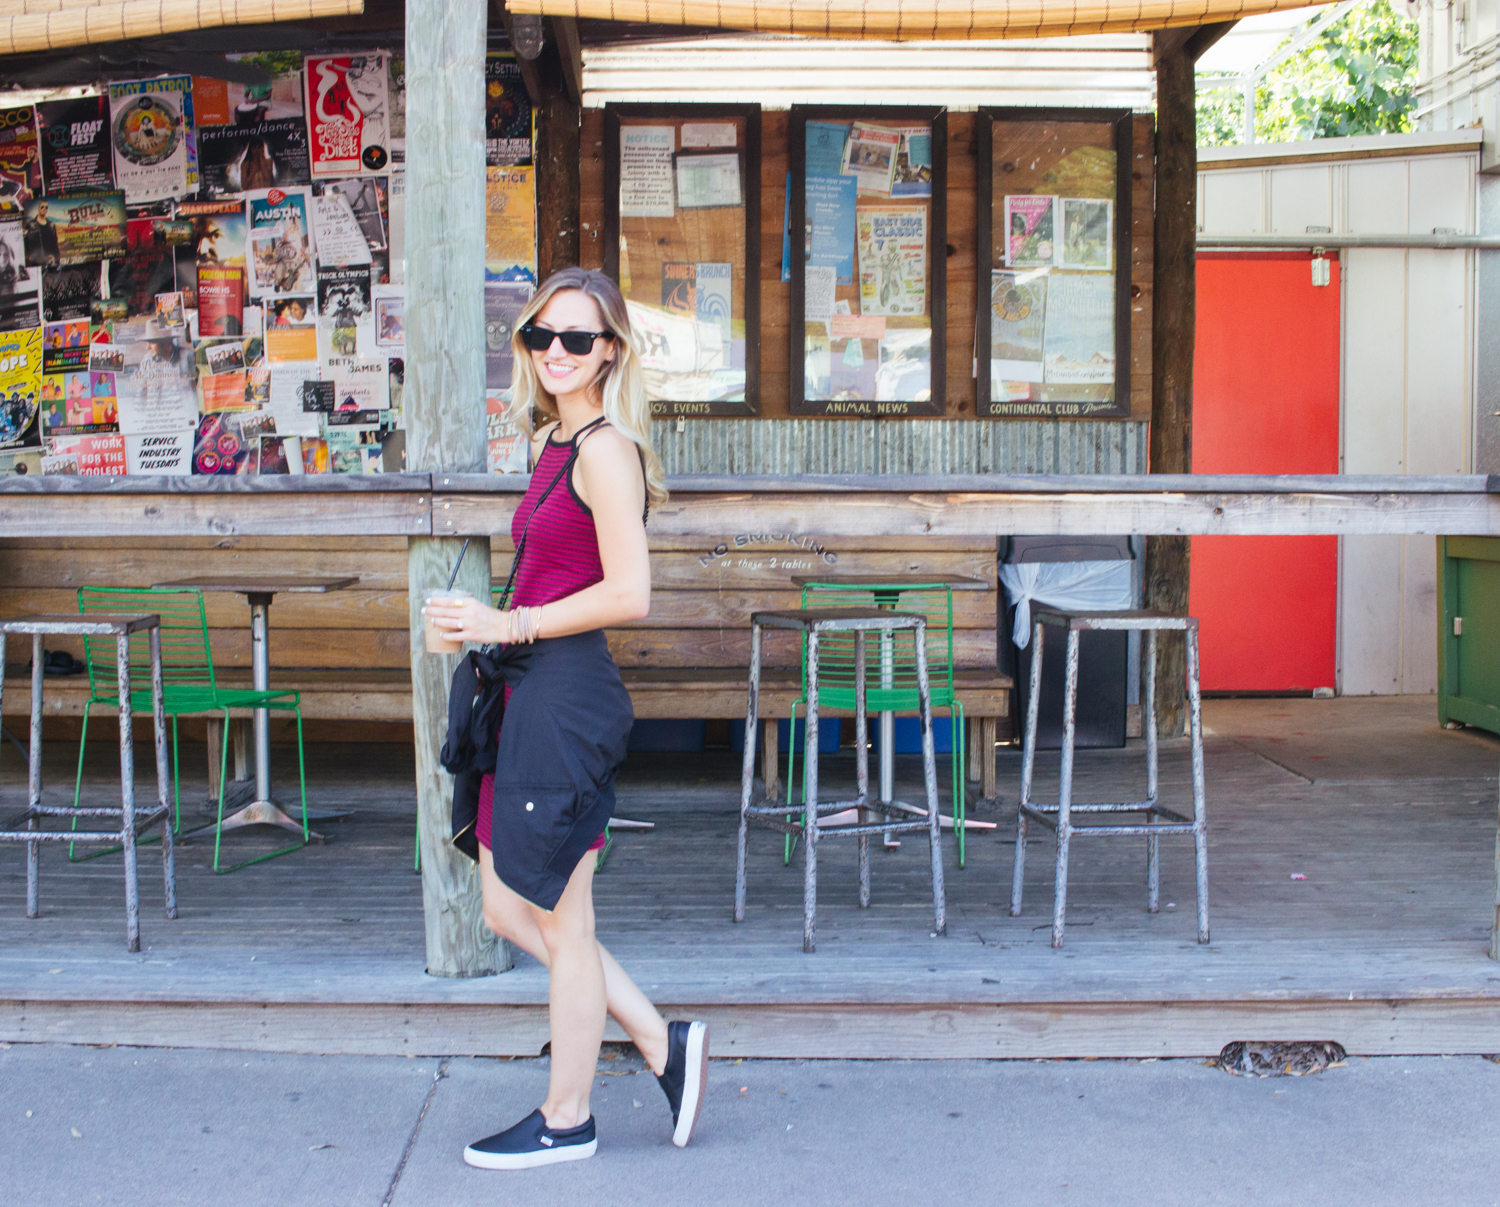 livvyland-blog-olivia-watson-austin-texas-fashion-style-blogger-jos-coffeehouse-south-congress-avenue-90s-style-express-black-bomber-jacket-vans-slip-on-sneakers-casual-weekend-outfit-10